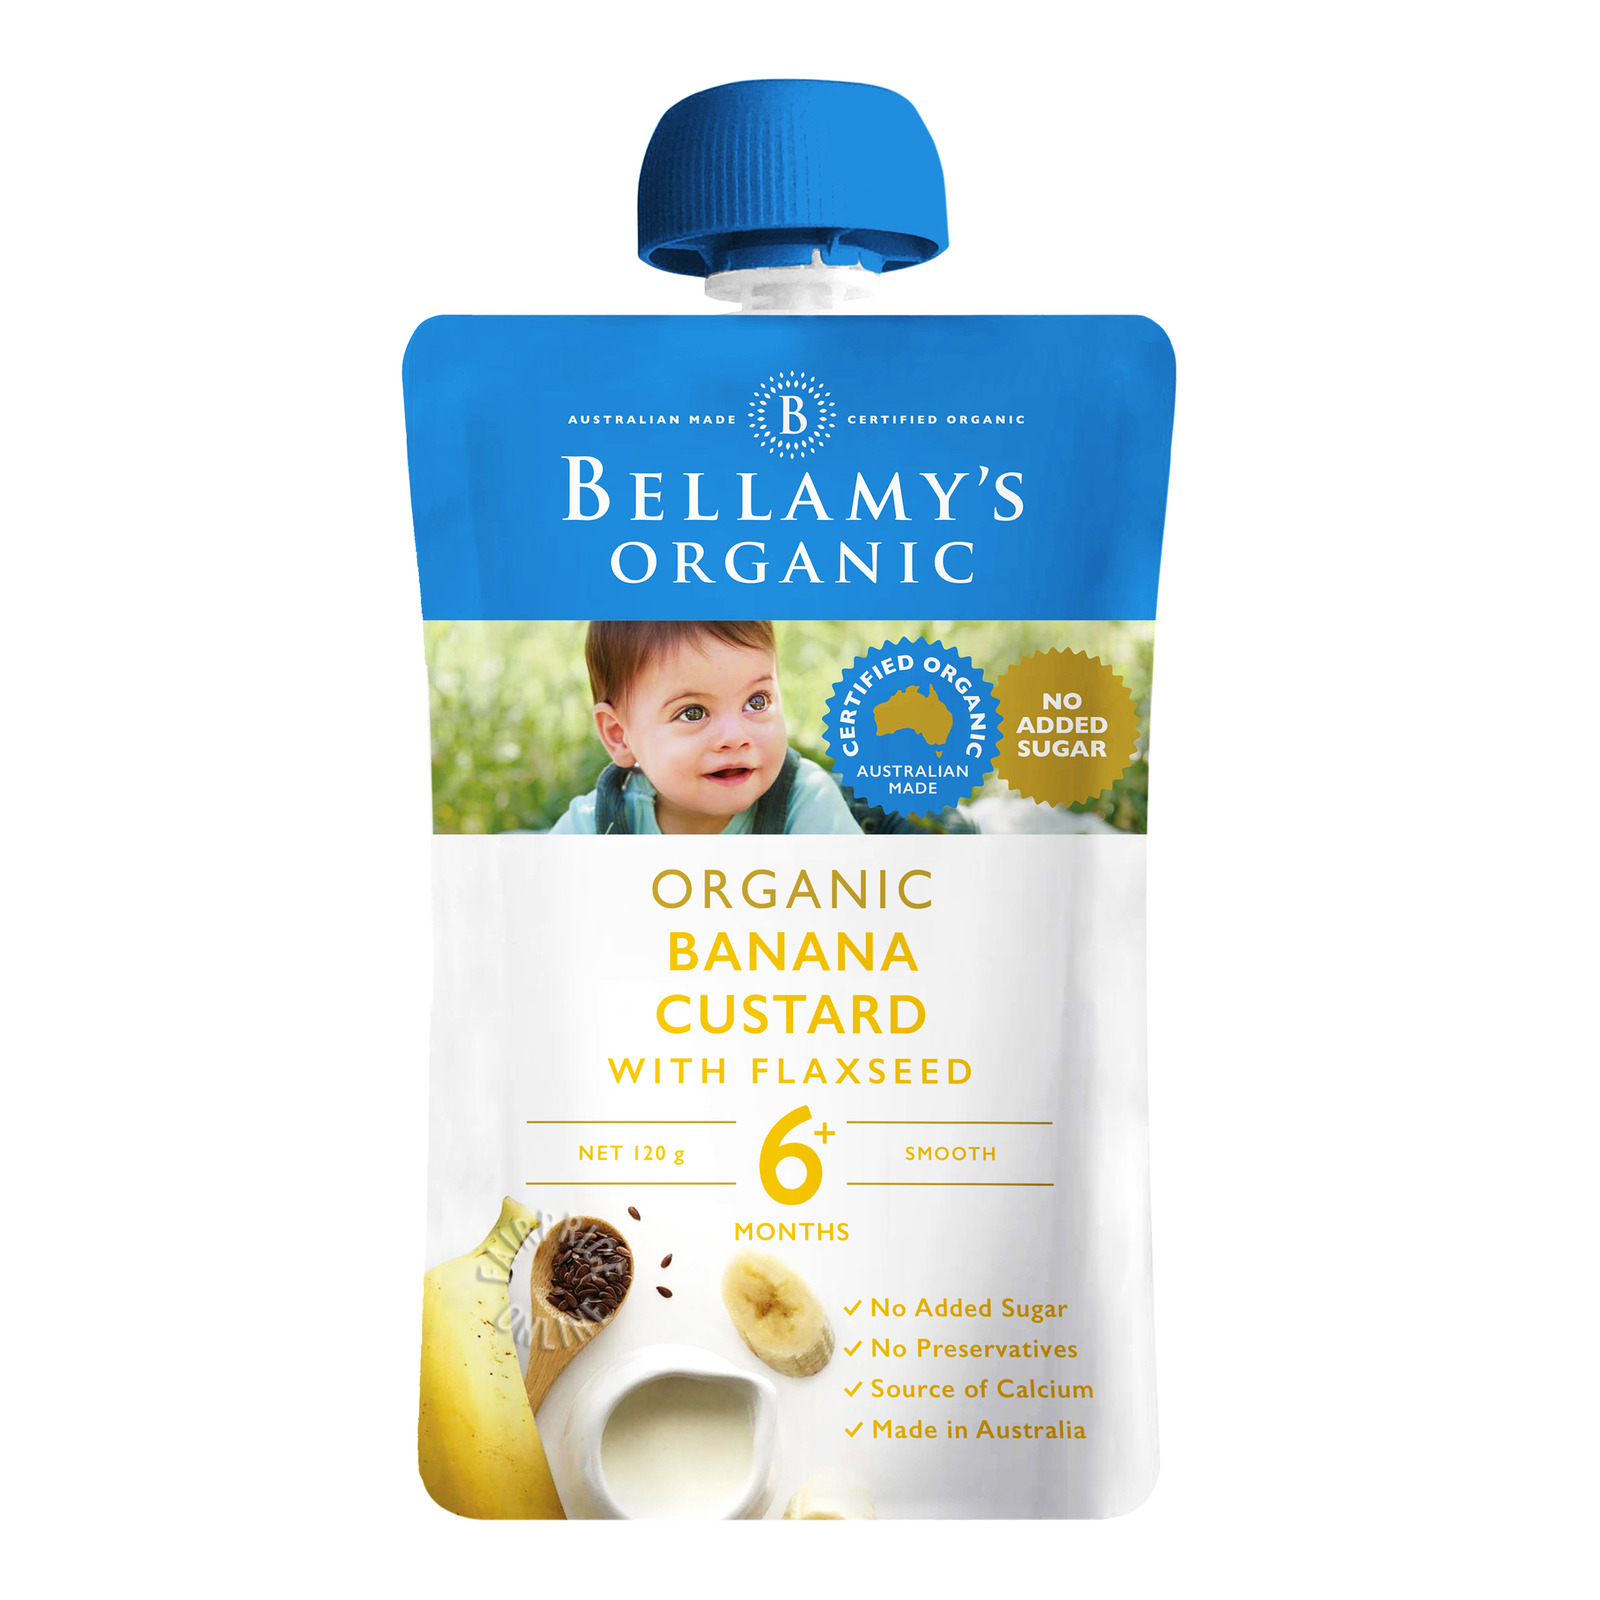 Bellamy's Organic Baby Food - Banana Custard with Flaxseed